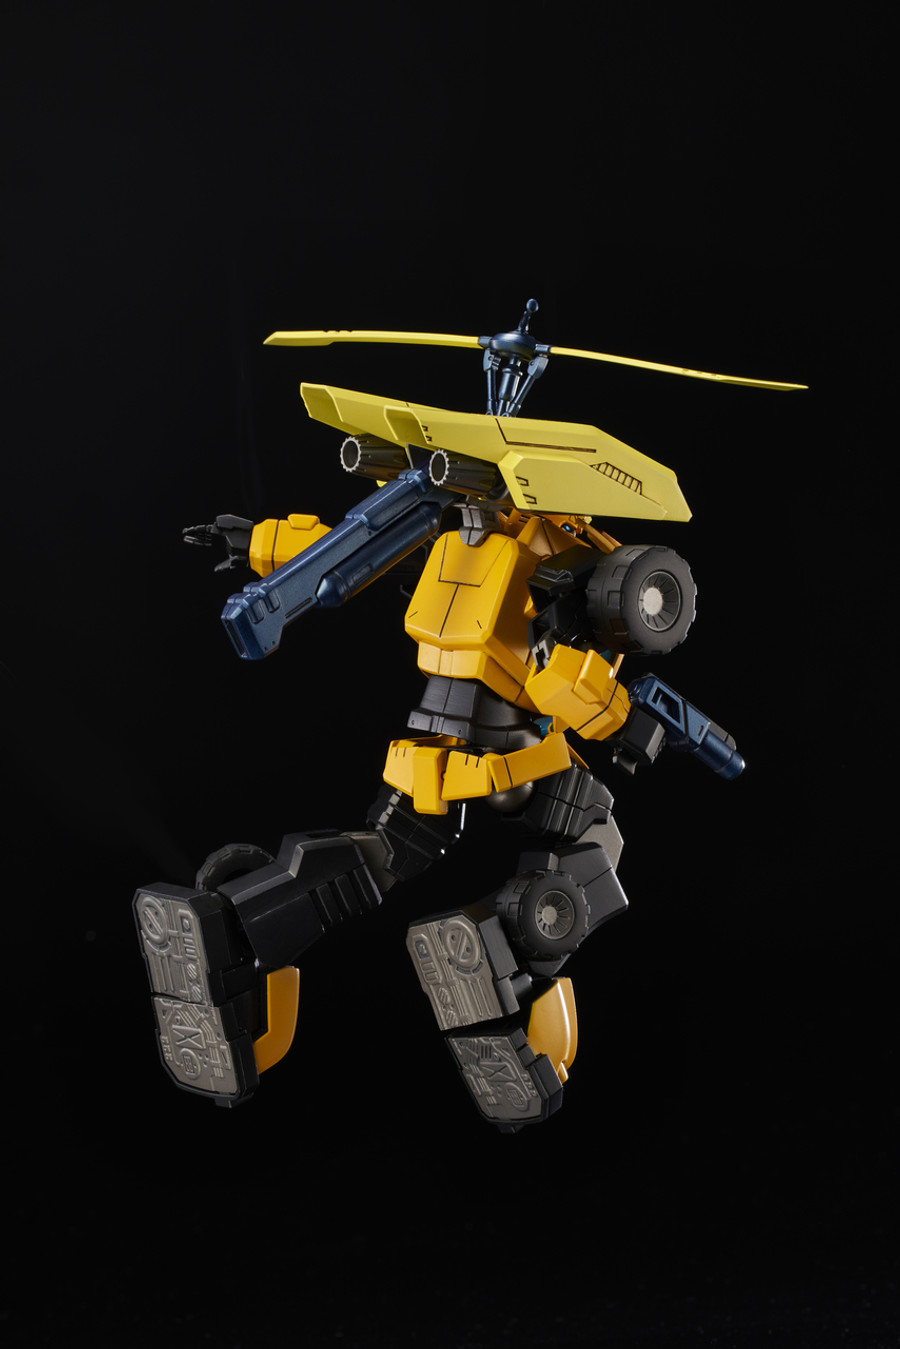 Flame Toys - Furai Model 04: Bumble Bee